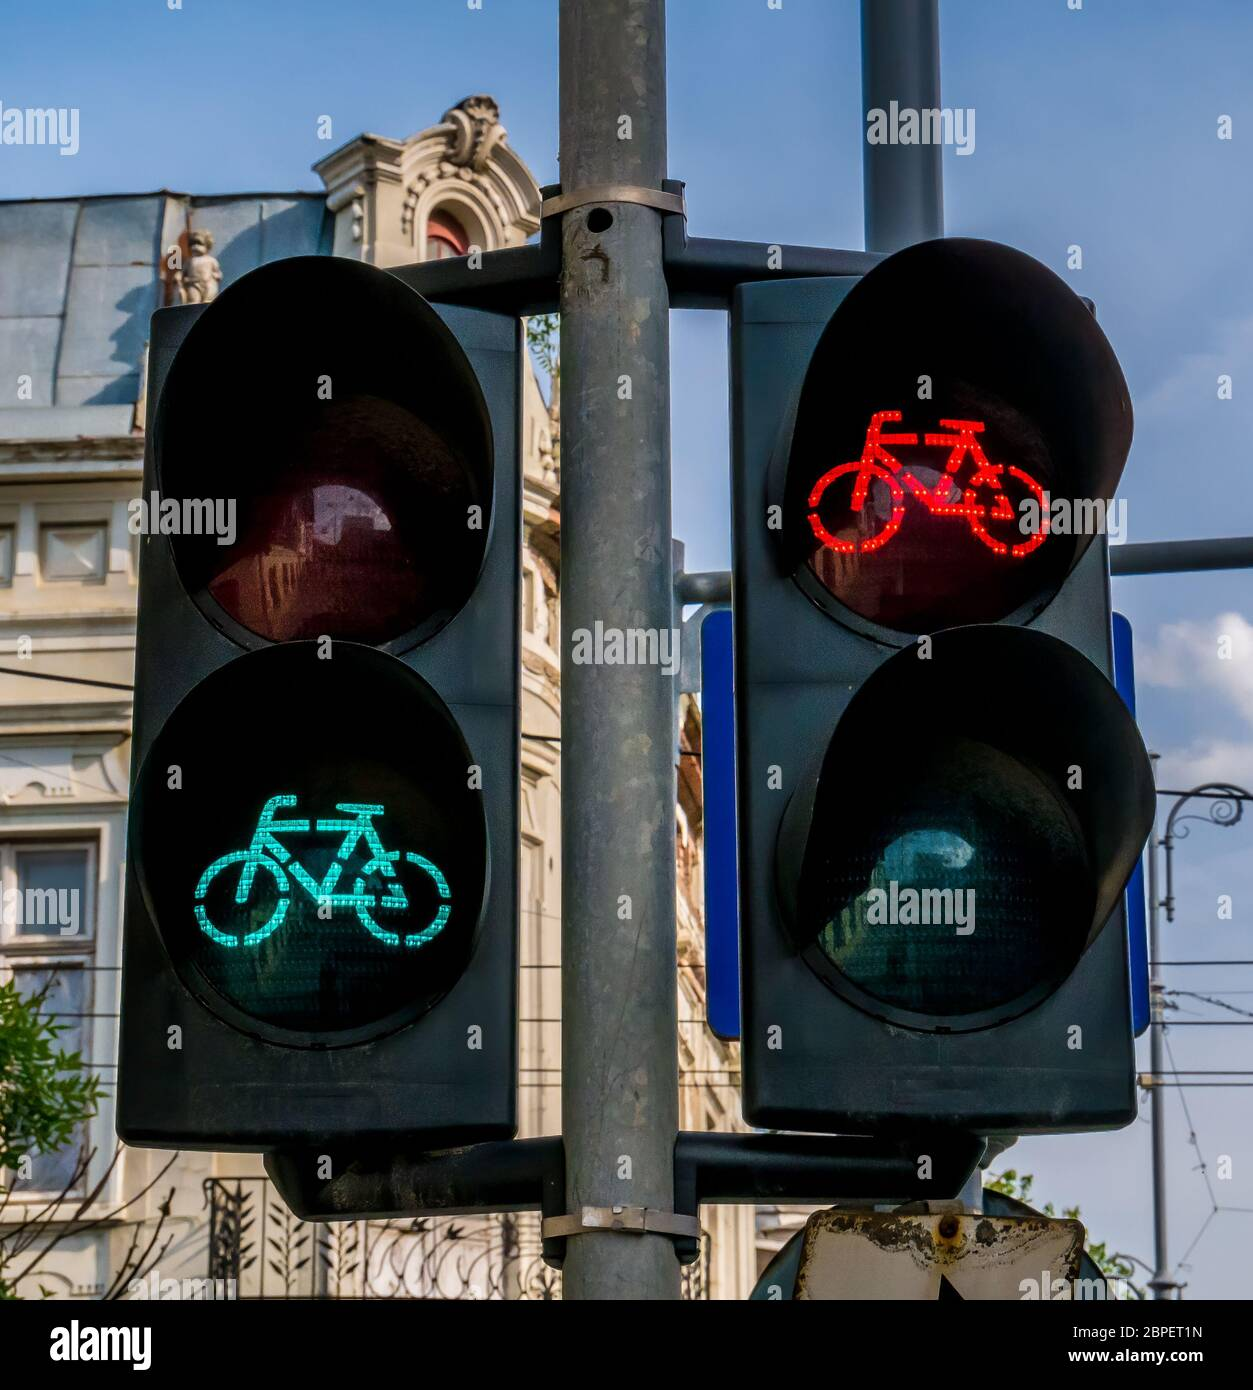 Cycle Track Lights High Resolution Stock Photography And Images Alamy Traffic light bicycle night glow neon